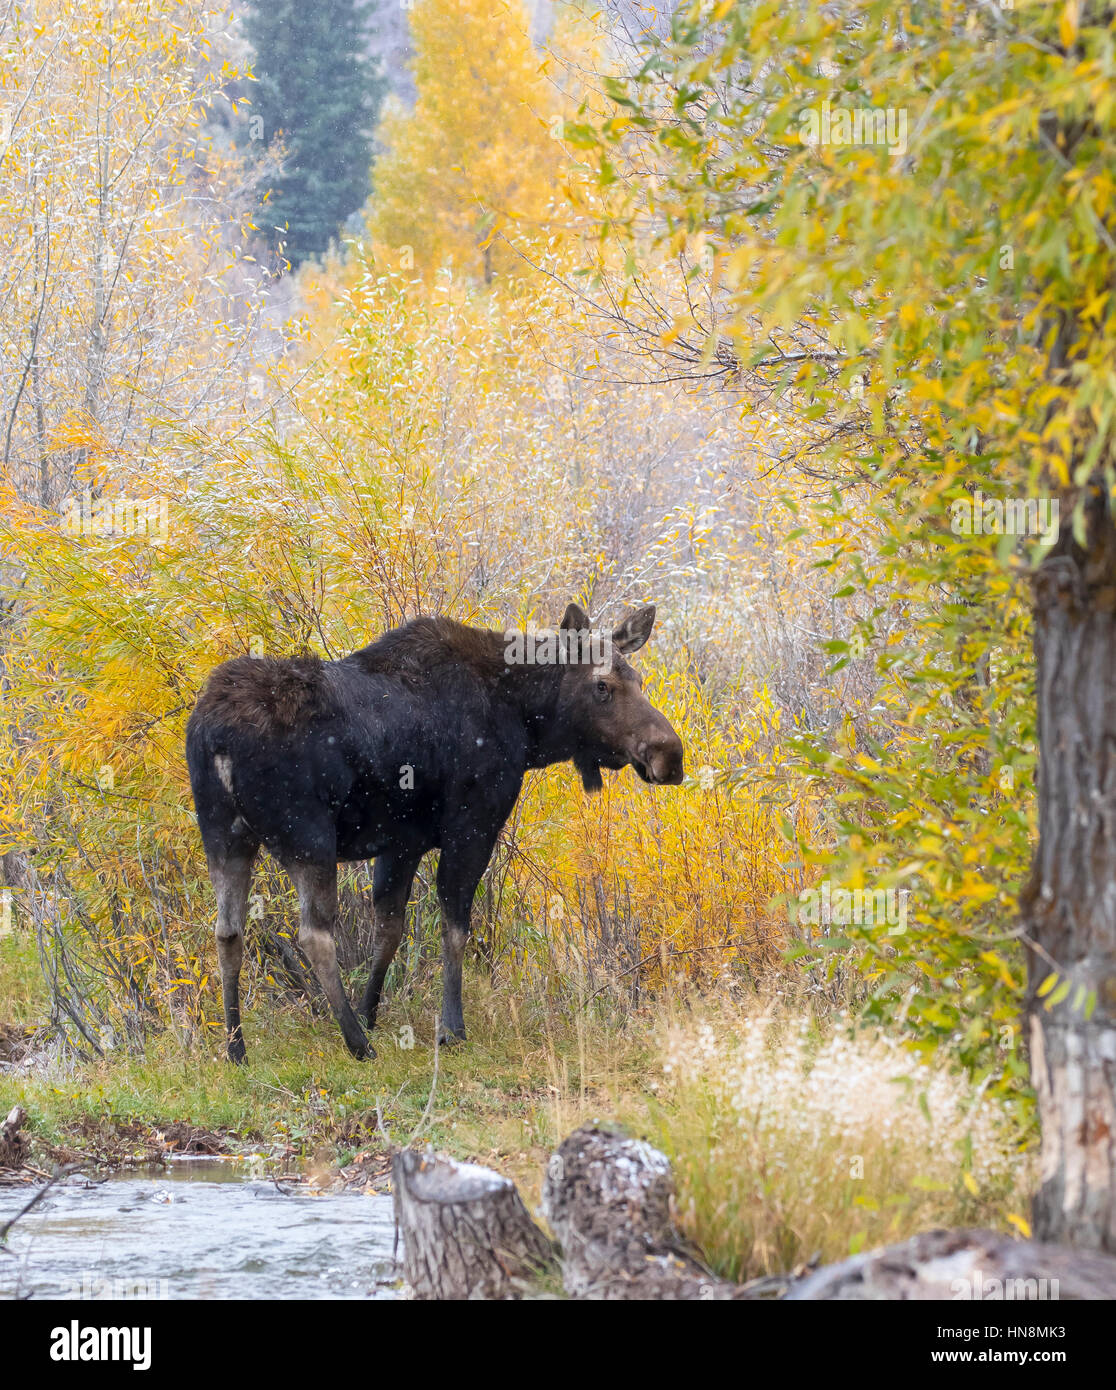 Cow moose next to river with intense fall colors - Stock Image